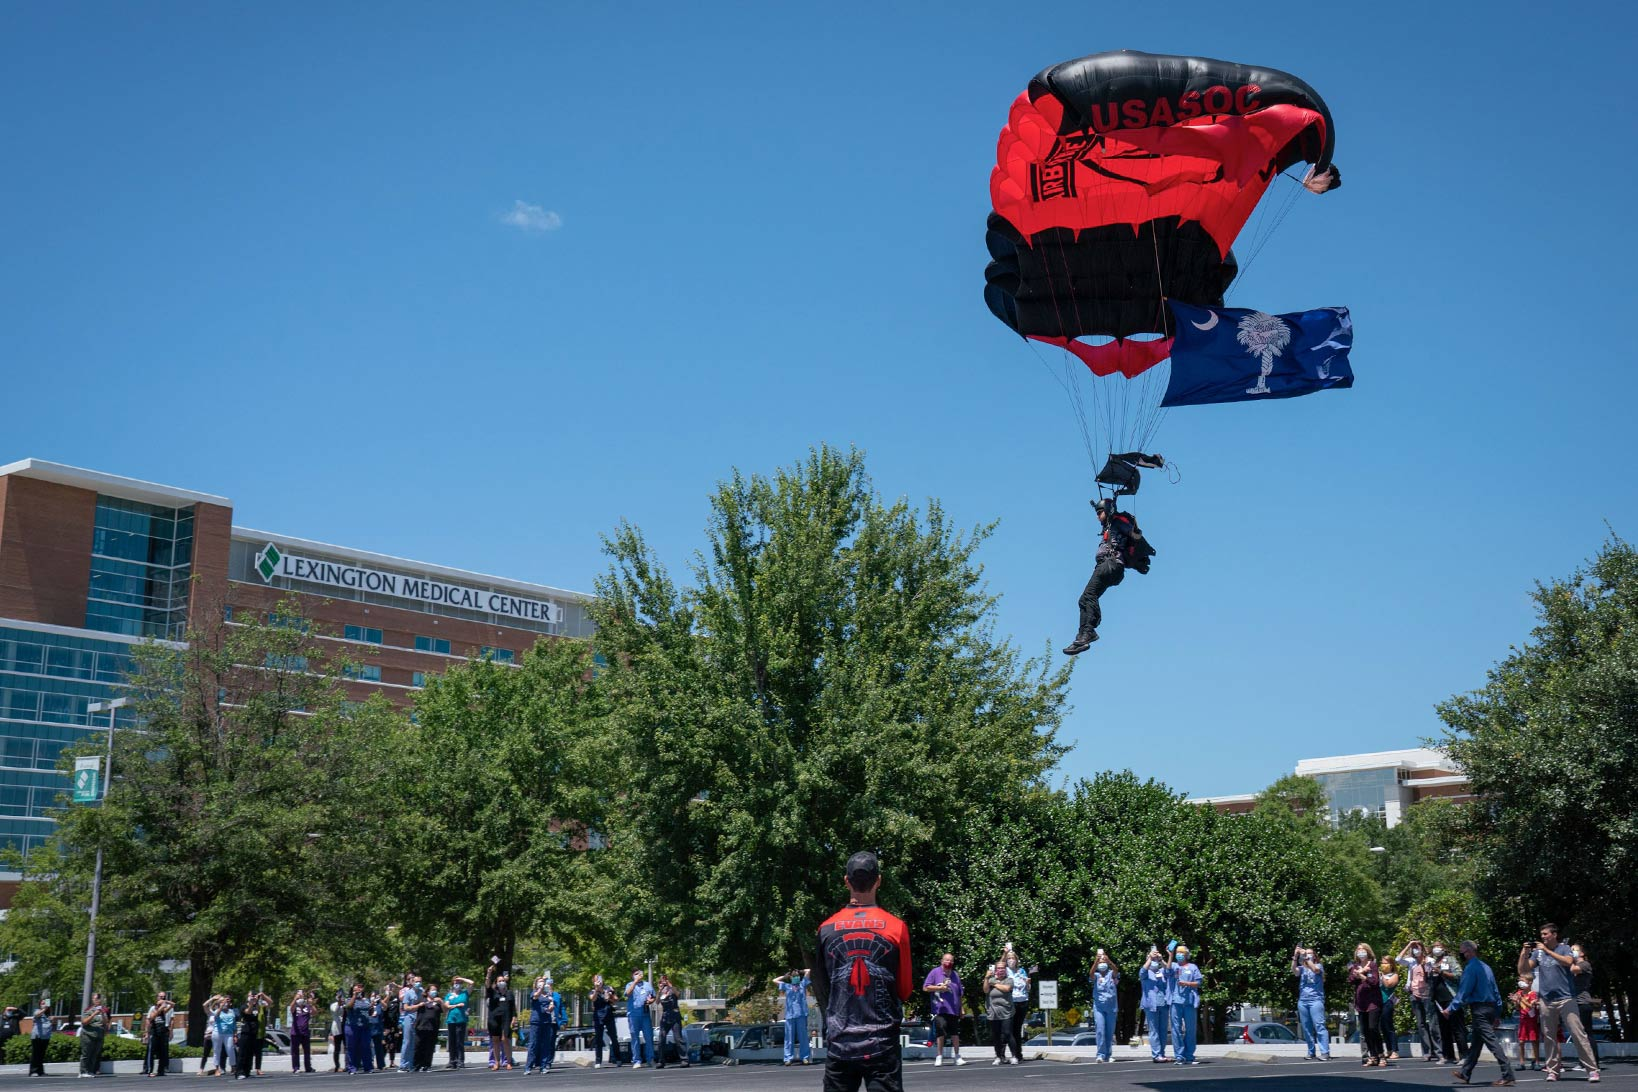 A Black Dagger member parachuting on the Lexington Medical Center main campus, waving the South Carolina flag, as staff and patients watch.